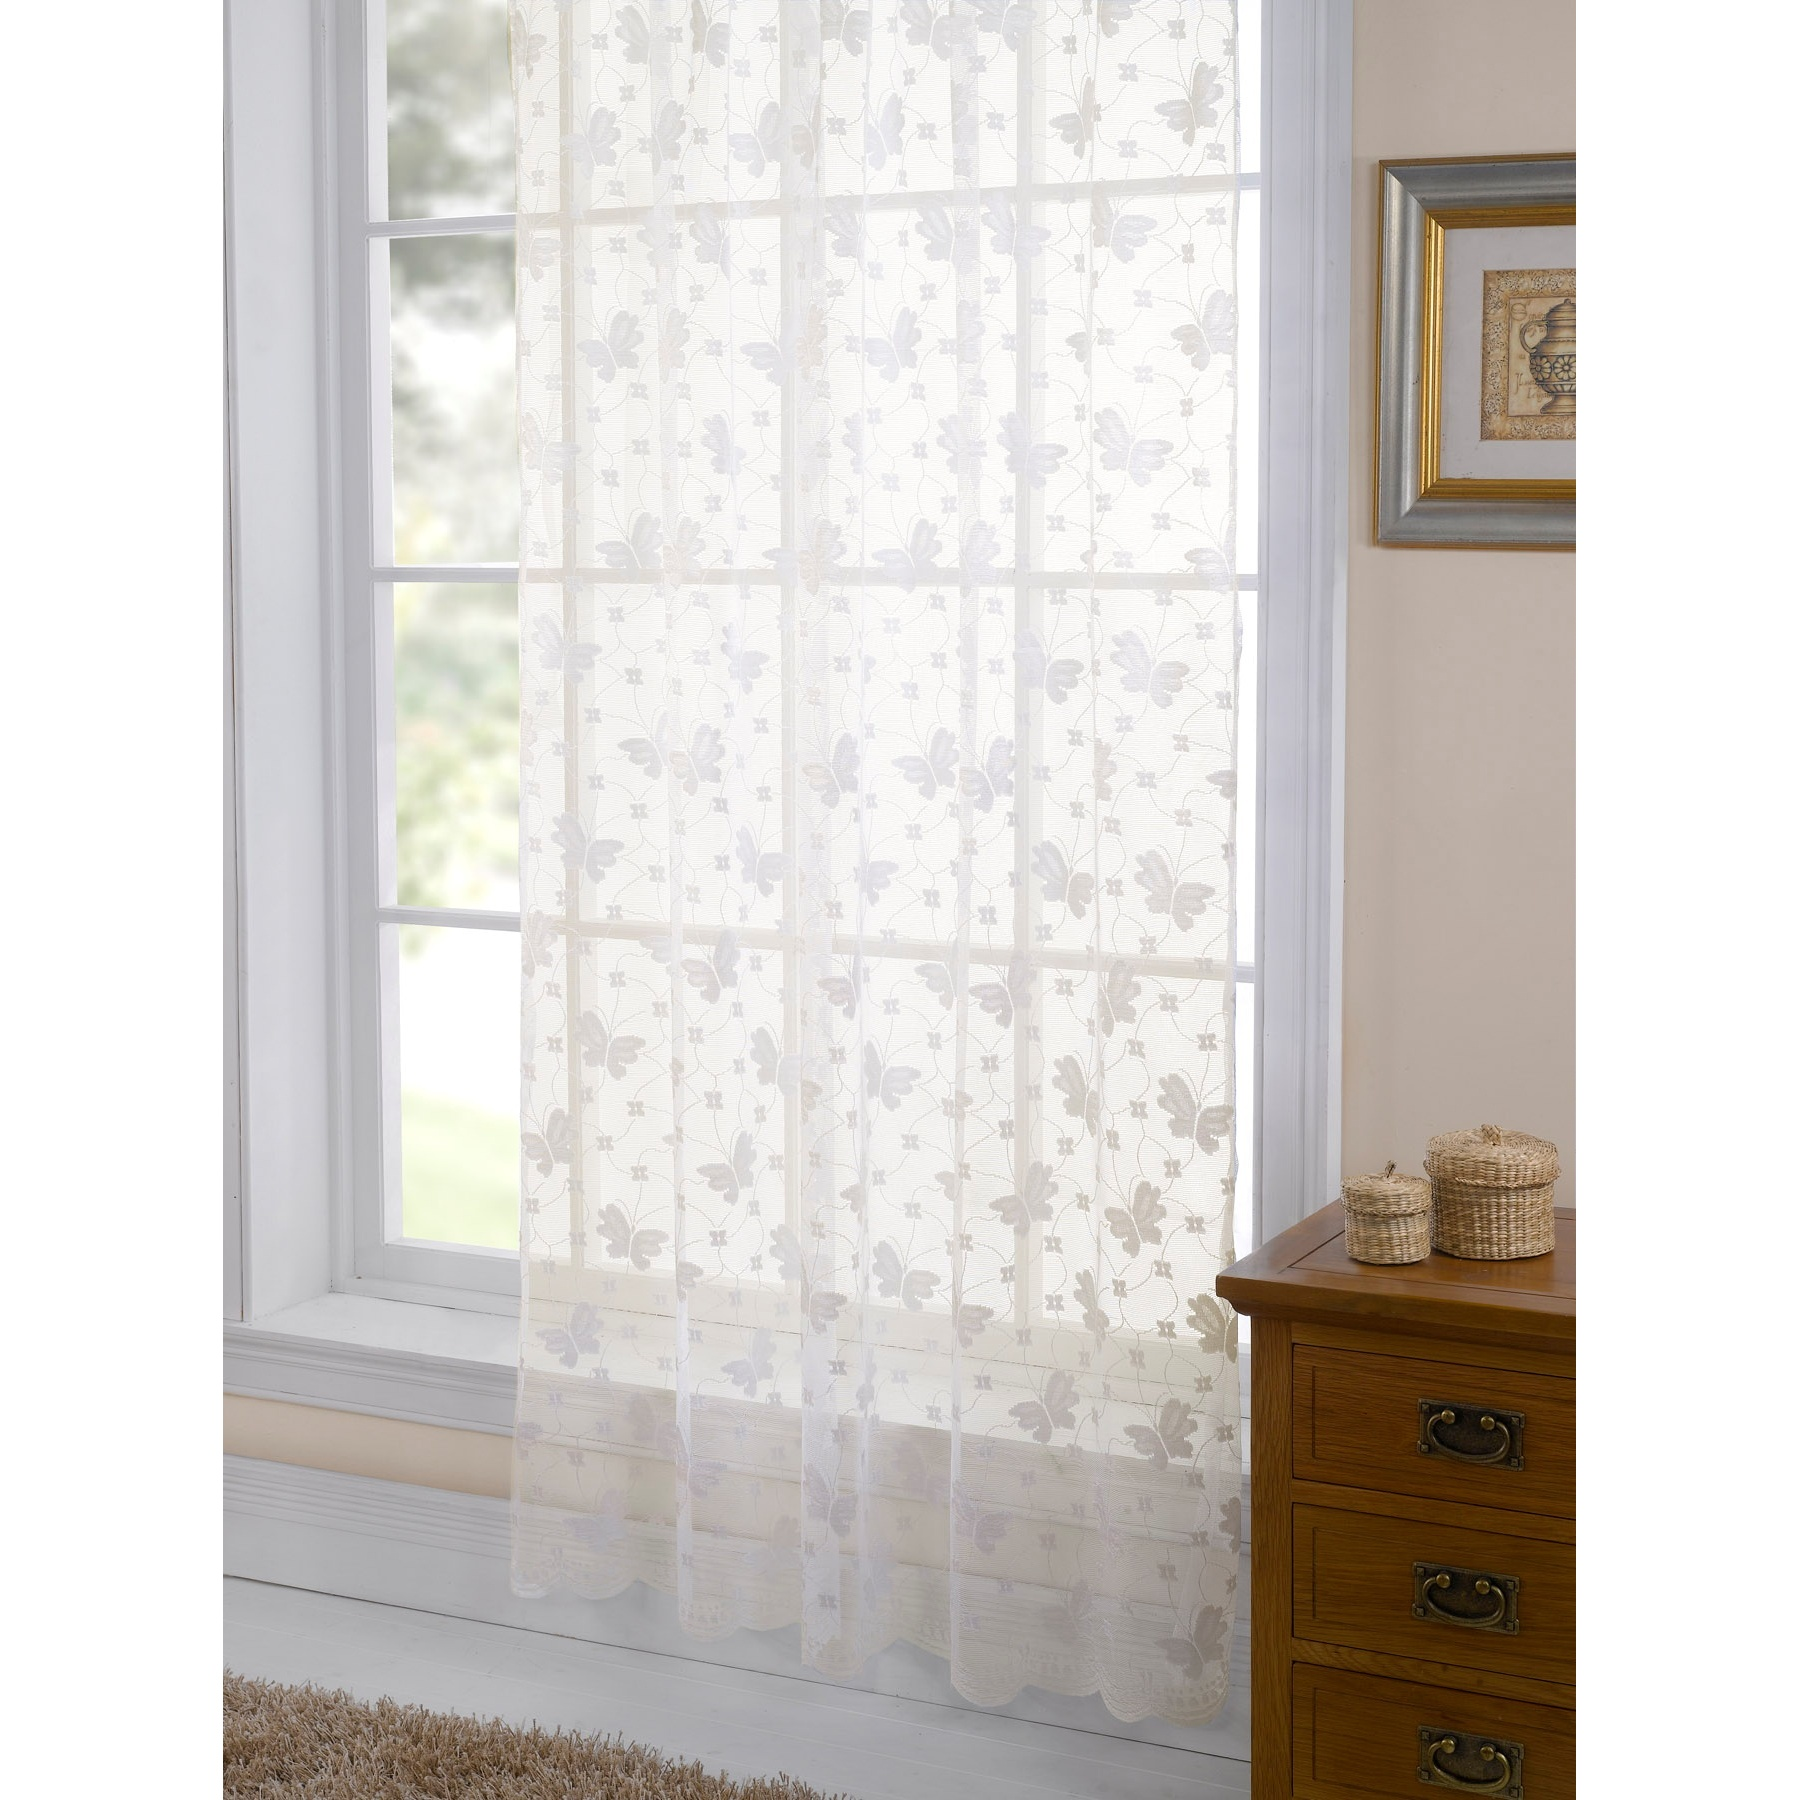 Jardin Butterfly Patterned Lace Living Room Panel Window Curtains Sheers Ebay